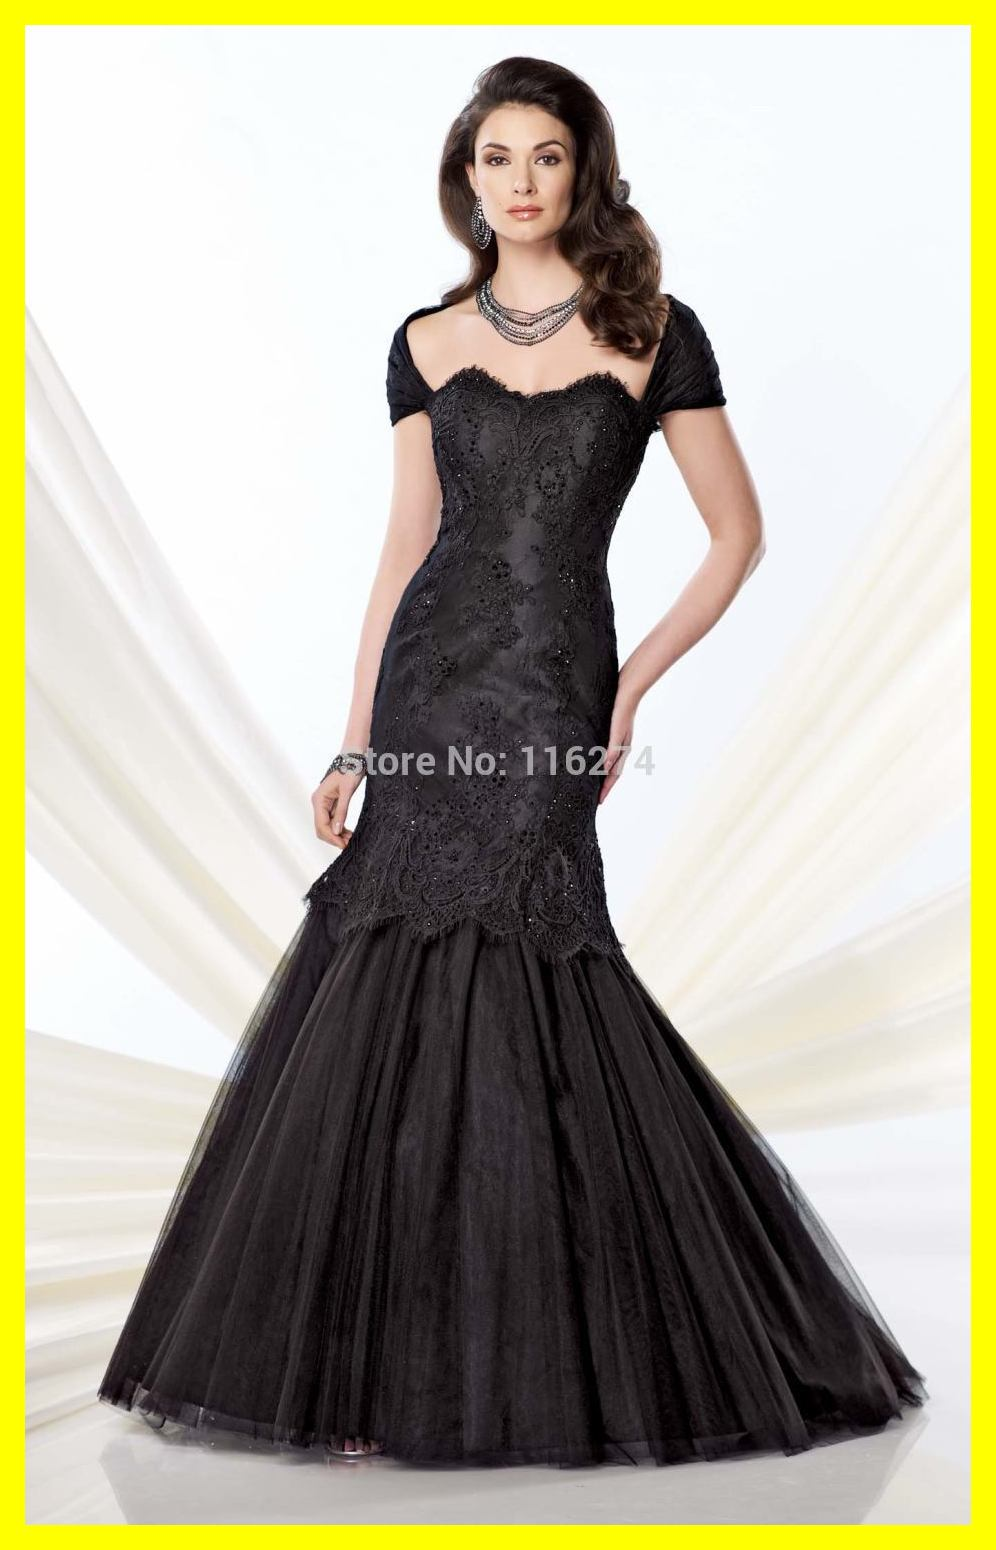 Plus Size Homecoming Dresses Dallas Tx 62